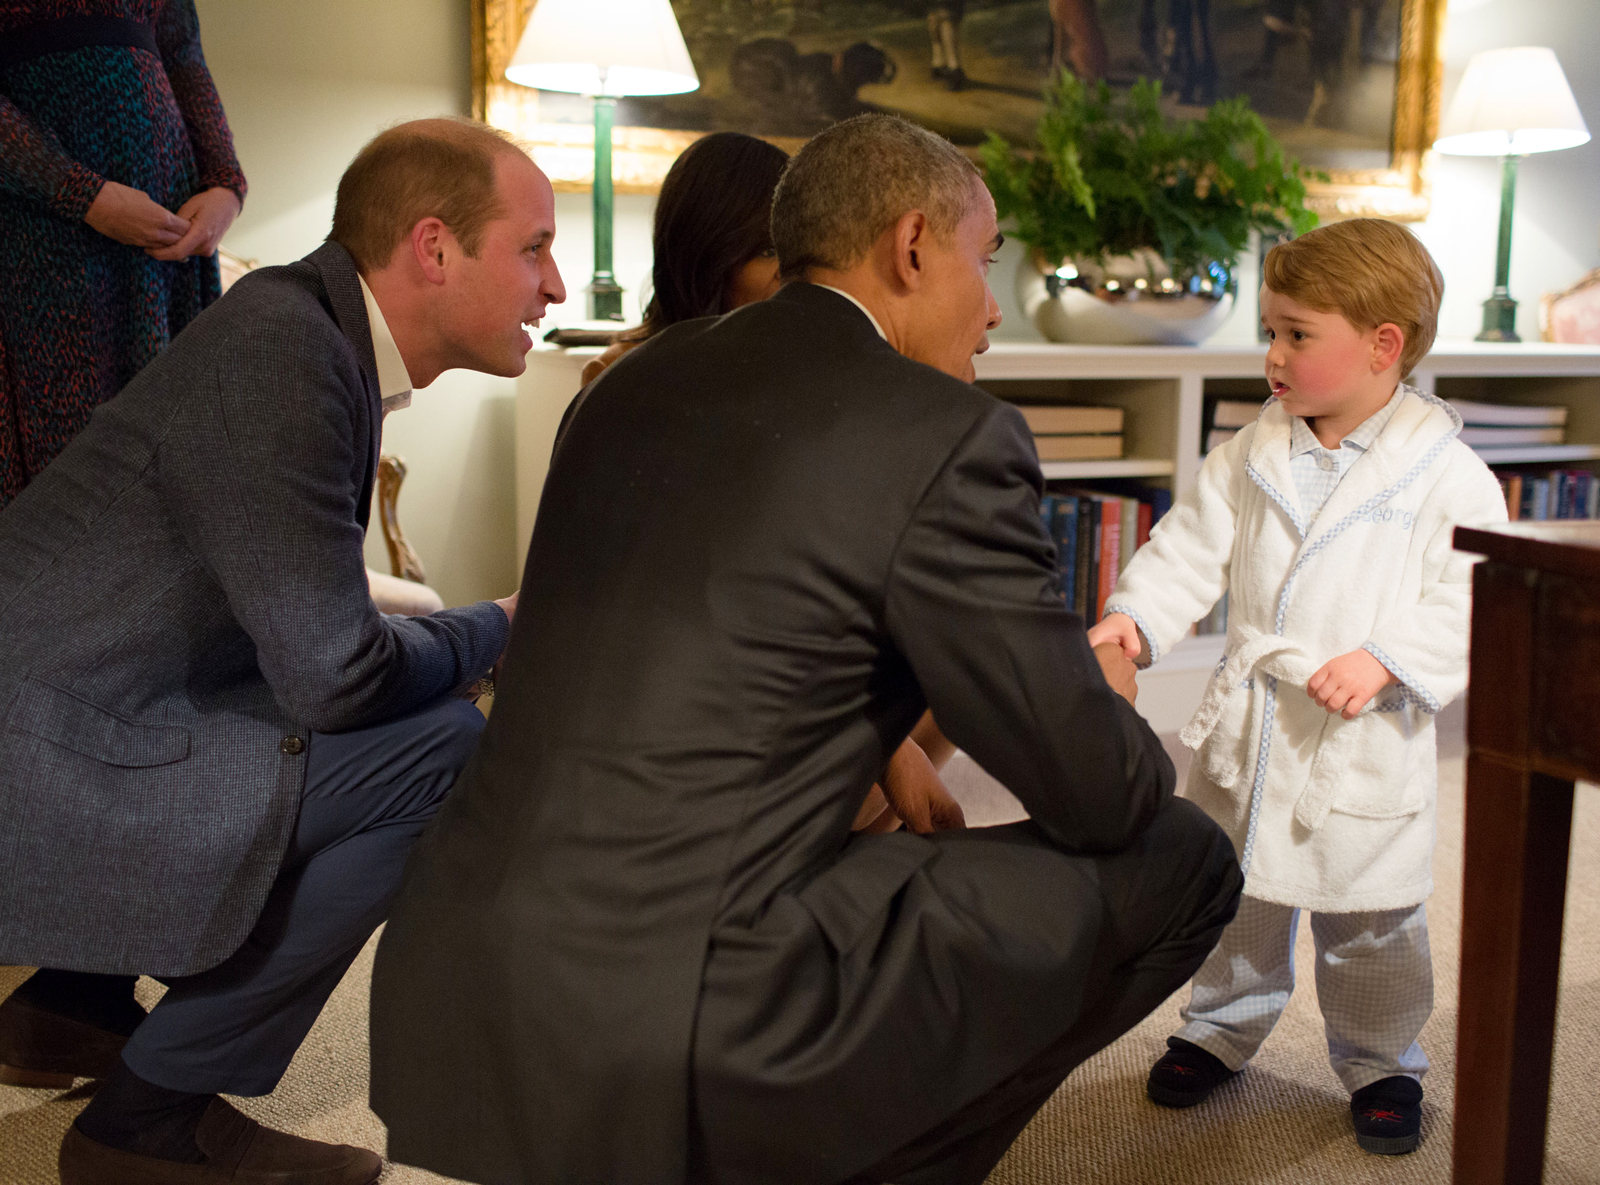 Prince George Meets President Obama ... In His Robe?